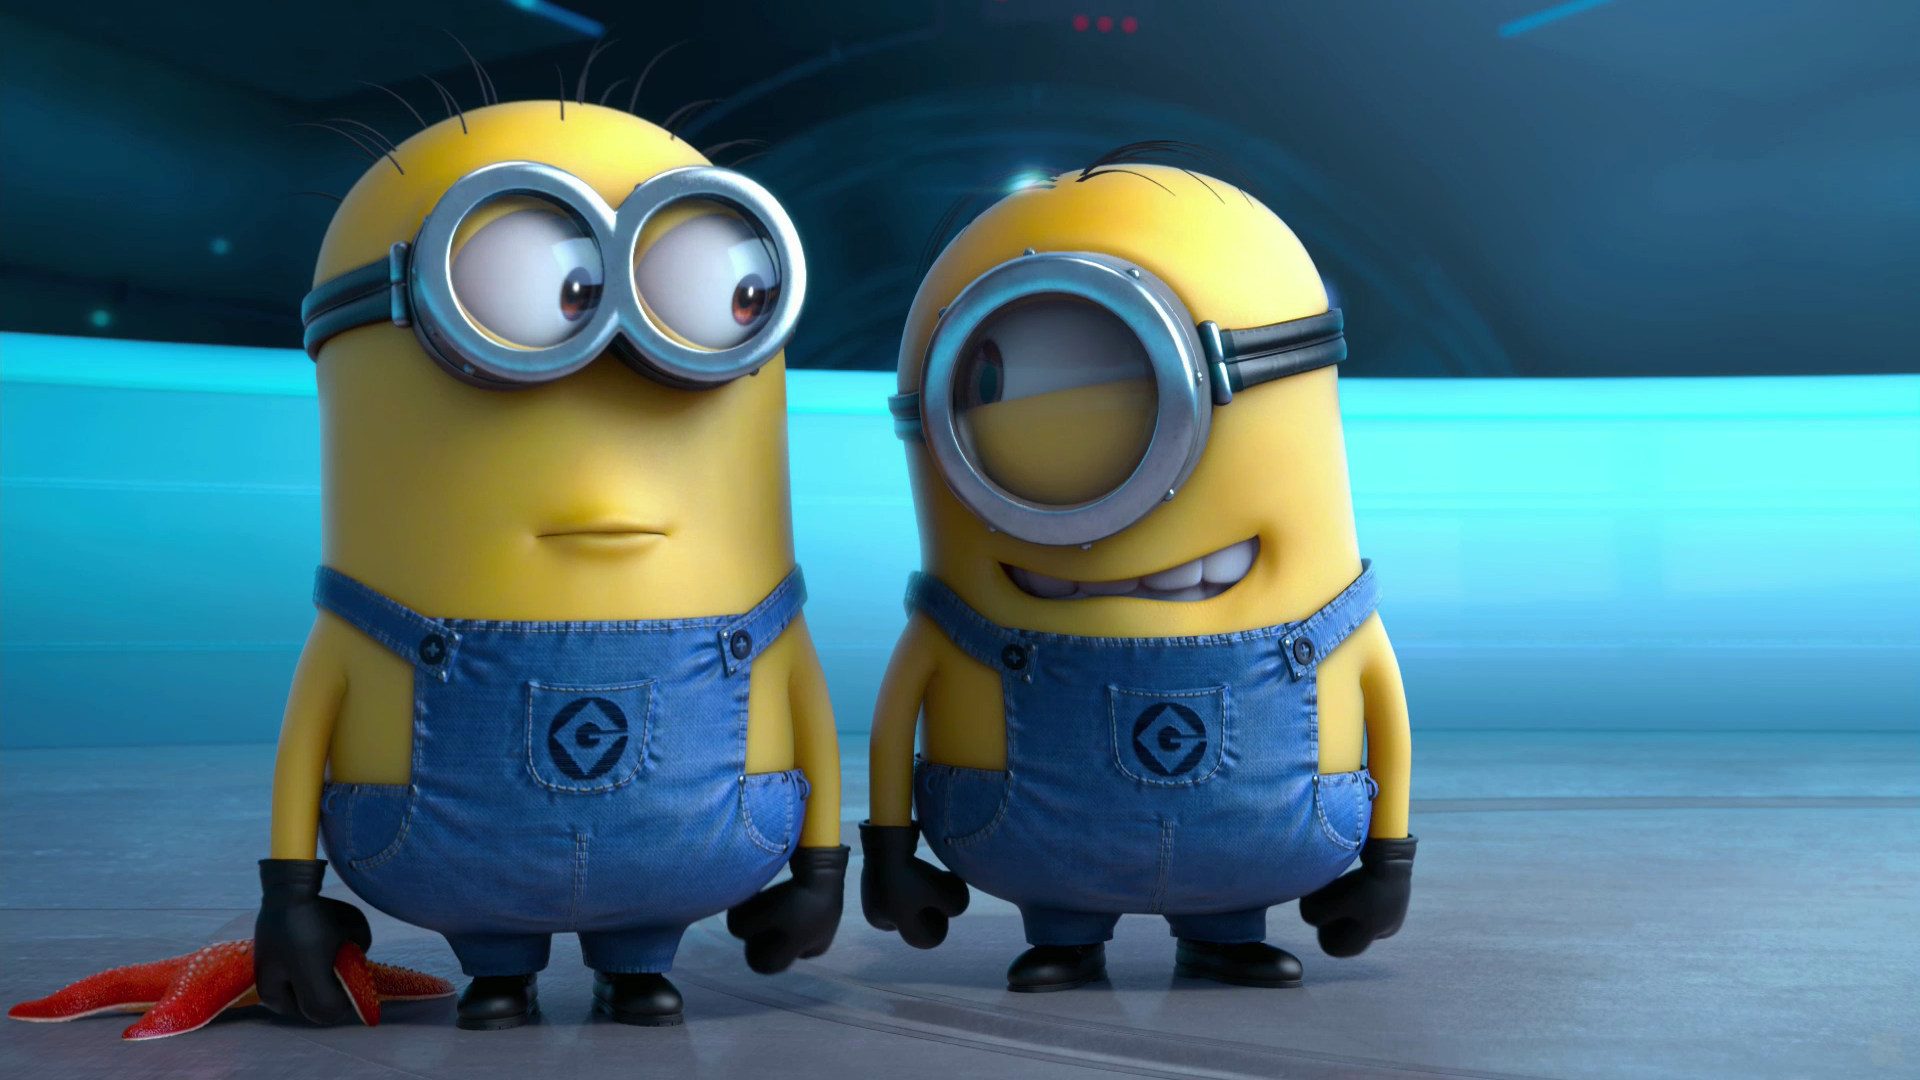 Desktop-Backgrounds-despicable-me-minion-image-Langston-Smith-1920-x-1080-wallpaper-wpc5804046